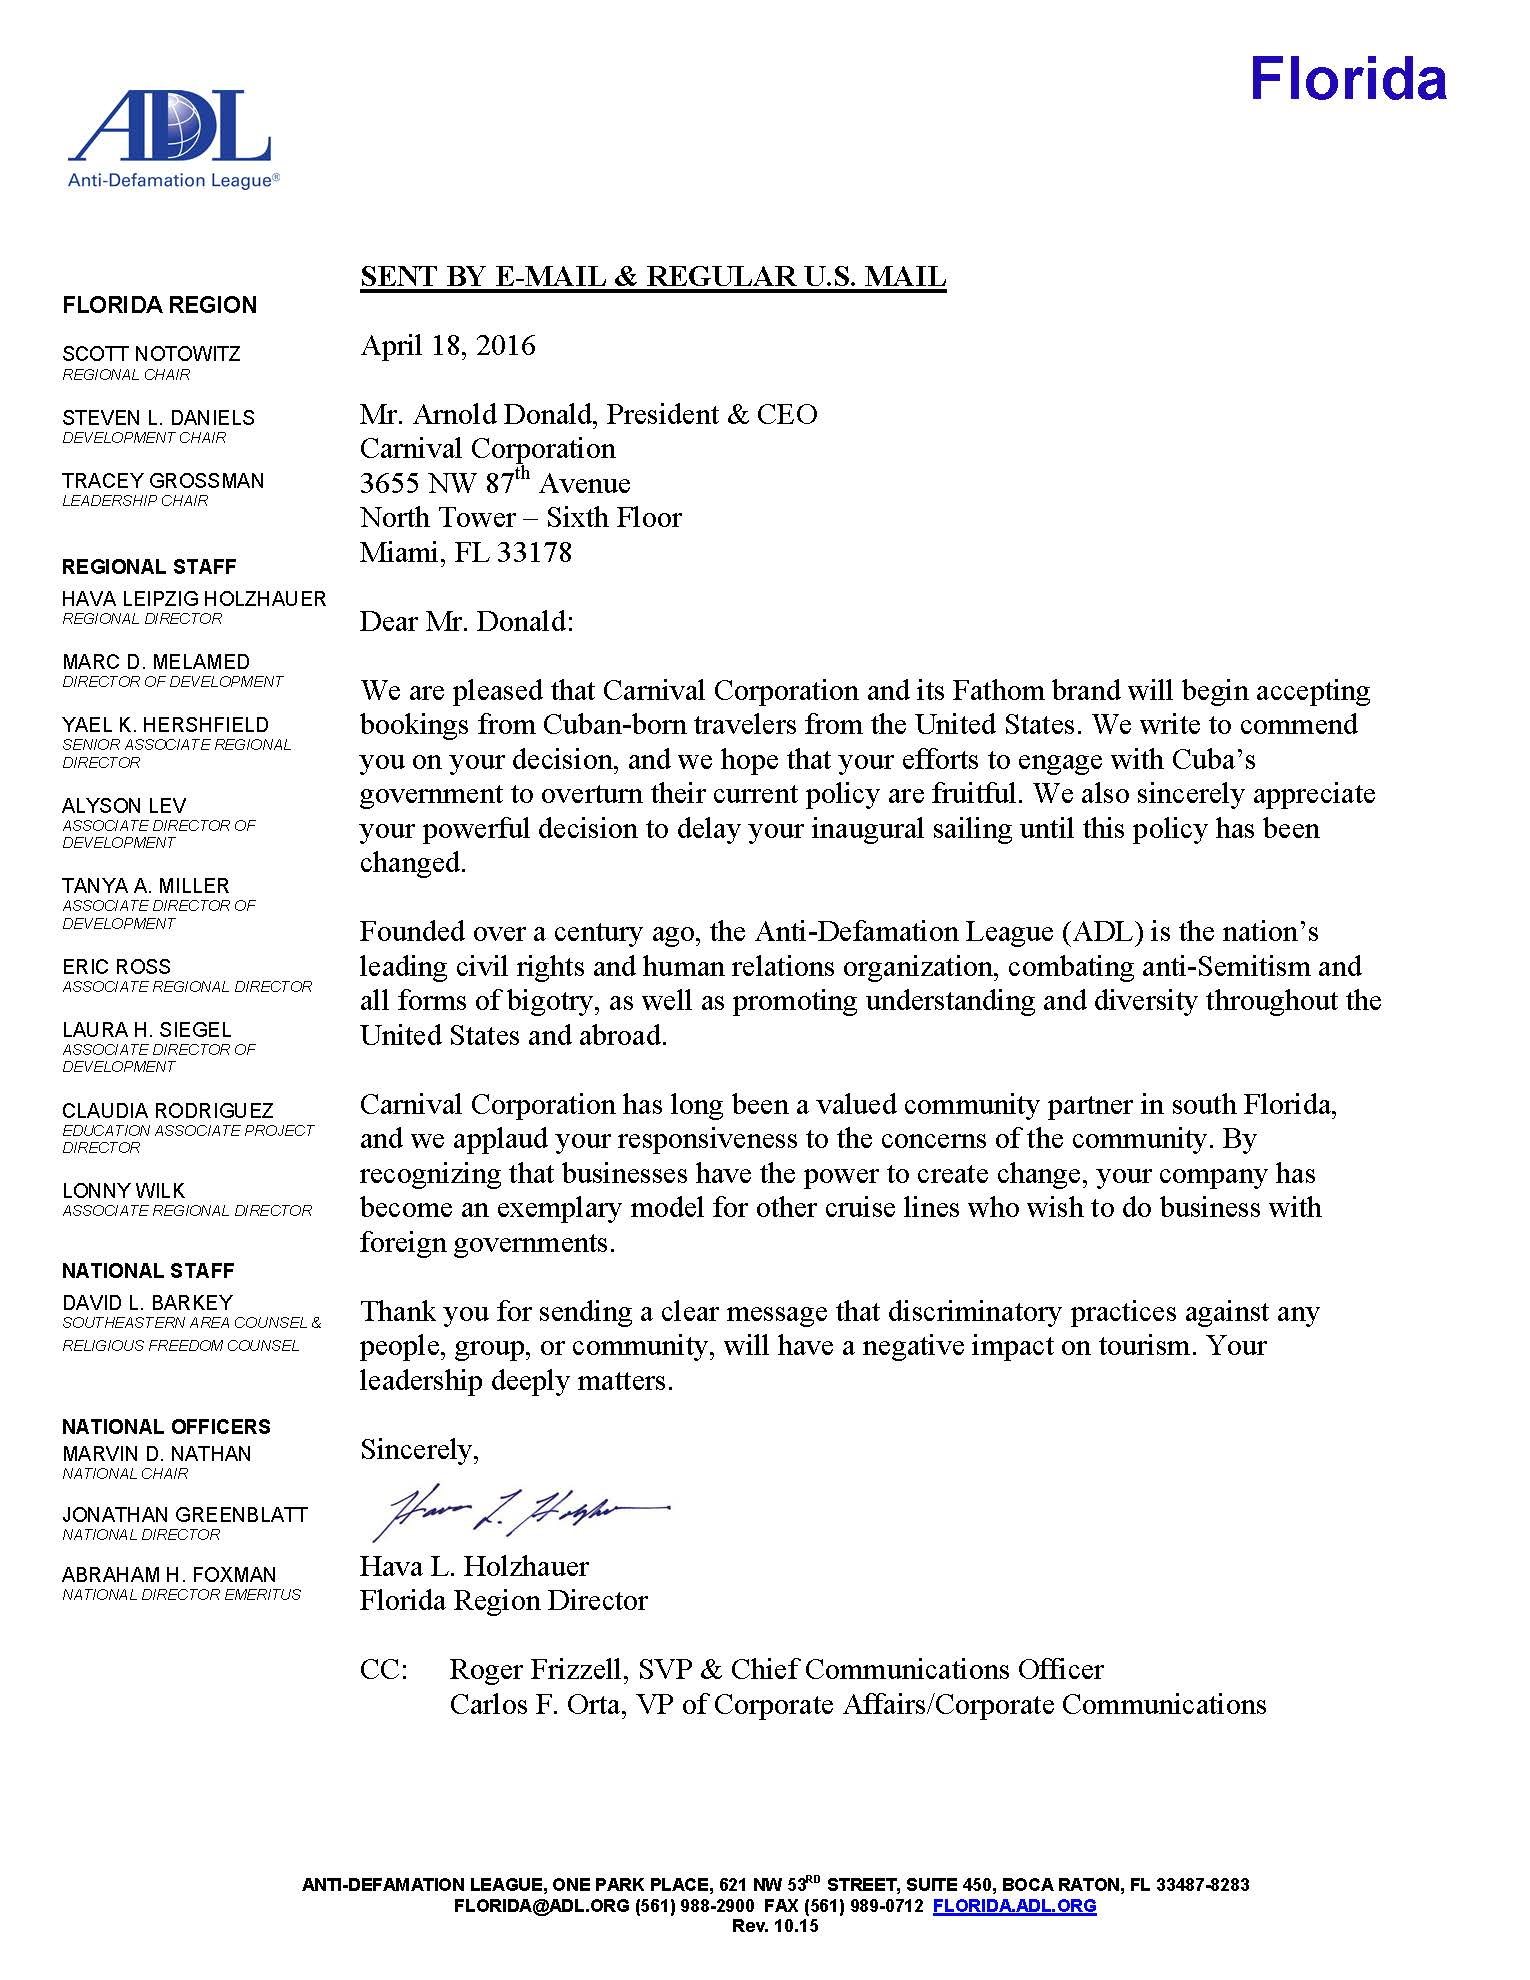 Anti defamation league adl letter to carnival corporation on adl ltr to carnival cruise line 4182016 altavistaventures Gallery